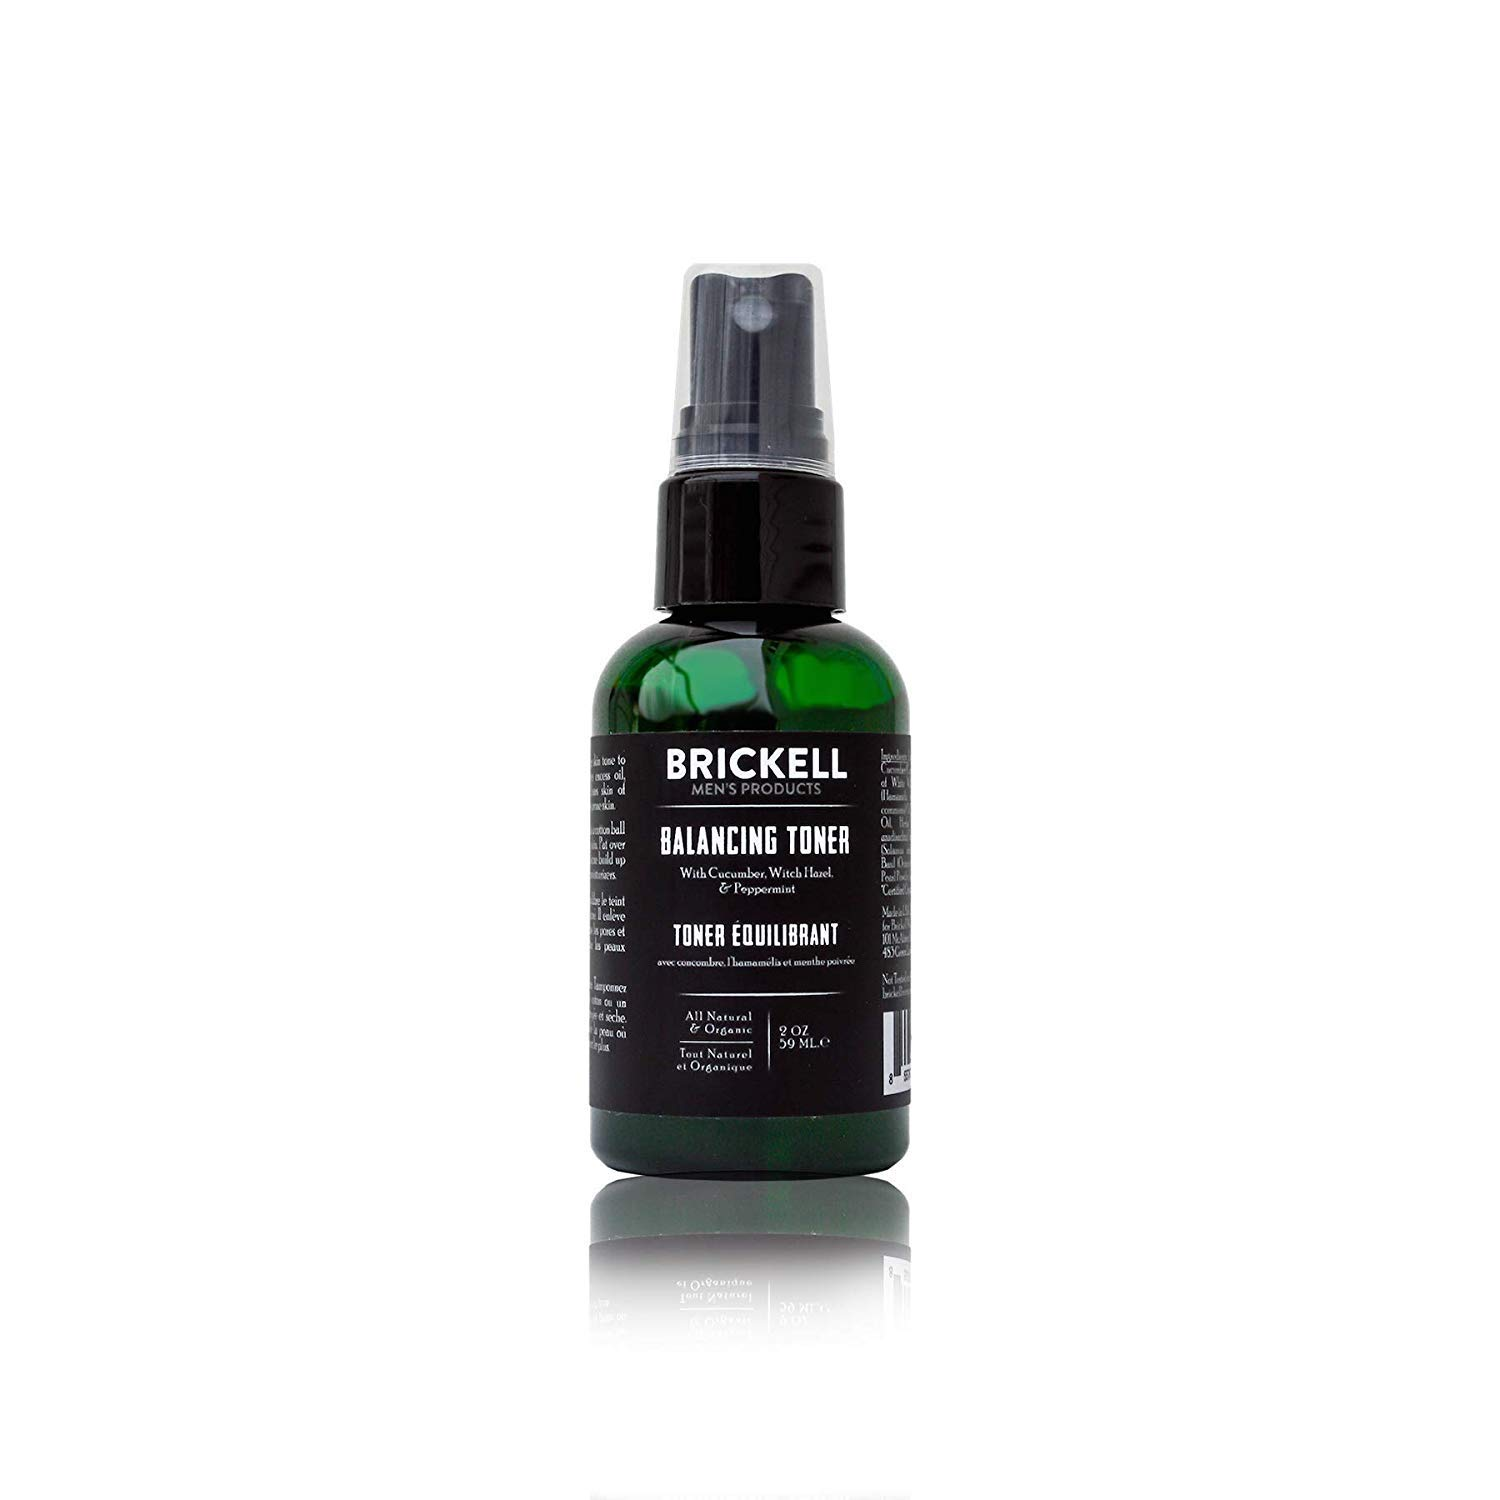 Brickell Men's Balancing Toner For Men, Natural and Organic Alcohol-Free Cucumber, Mint Facial Toner with Witch Hazel, 2 Ounce, Scented